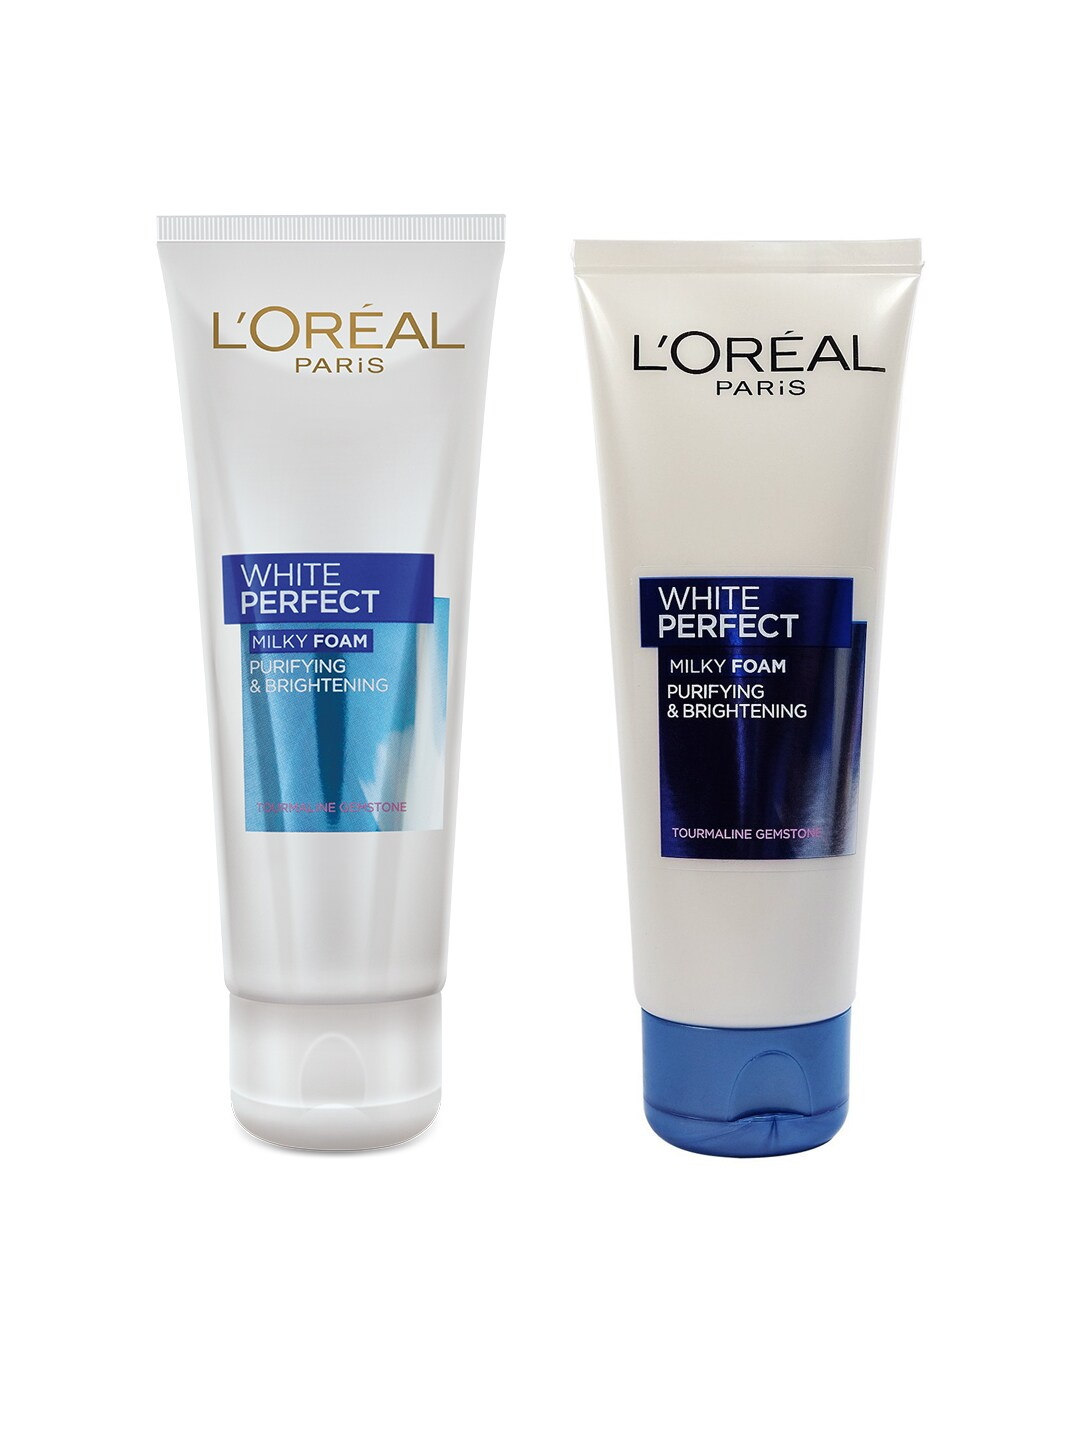 Loreal And Face Wash And Face Wash And Cleanser Face Wash And Cleanser Dungarees Tunics - Buy Loreal And Face Wash And Face Wash And Cleanser Face Wash And ...